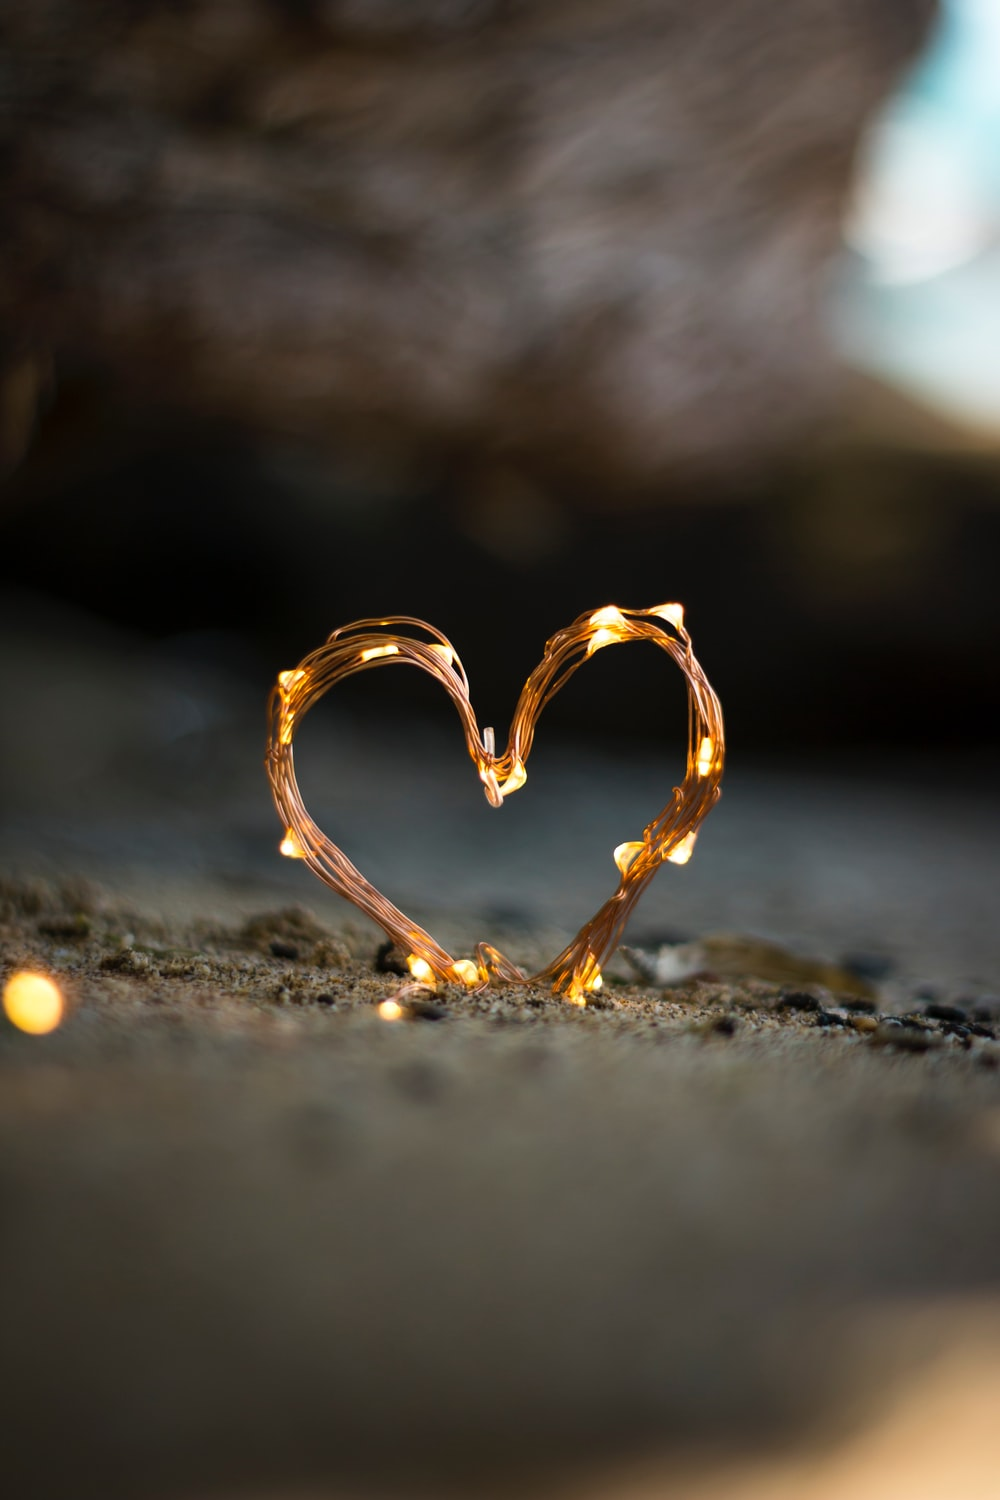 Heart Pictures Hd Download Free Images Stock Photos On Unsplash